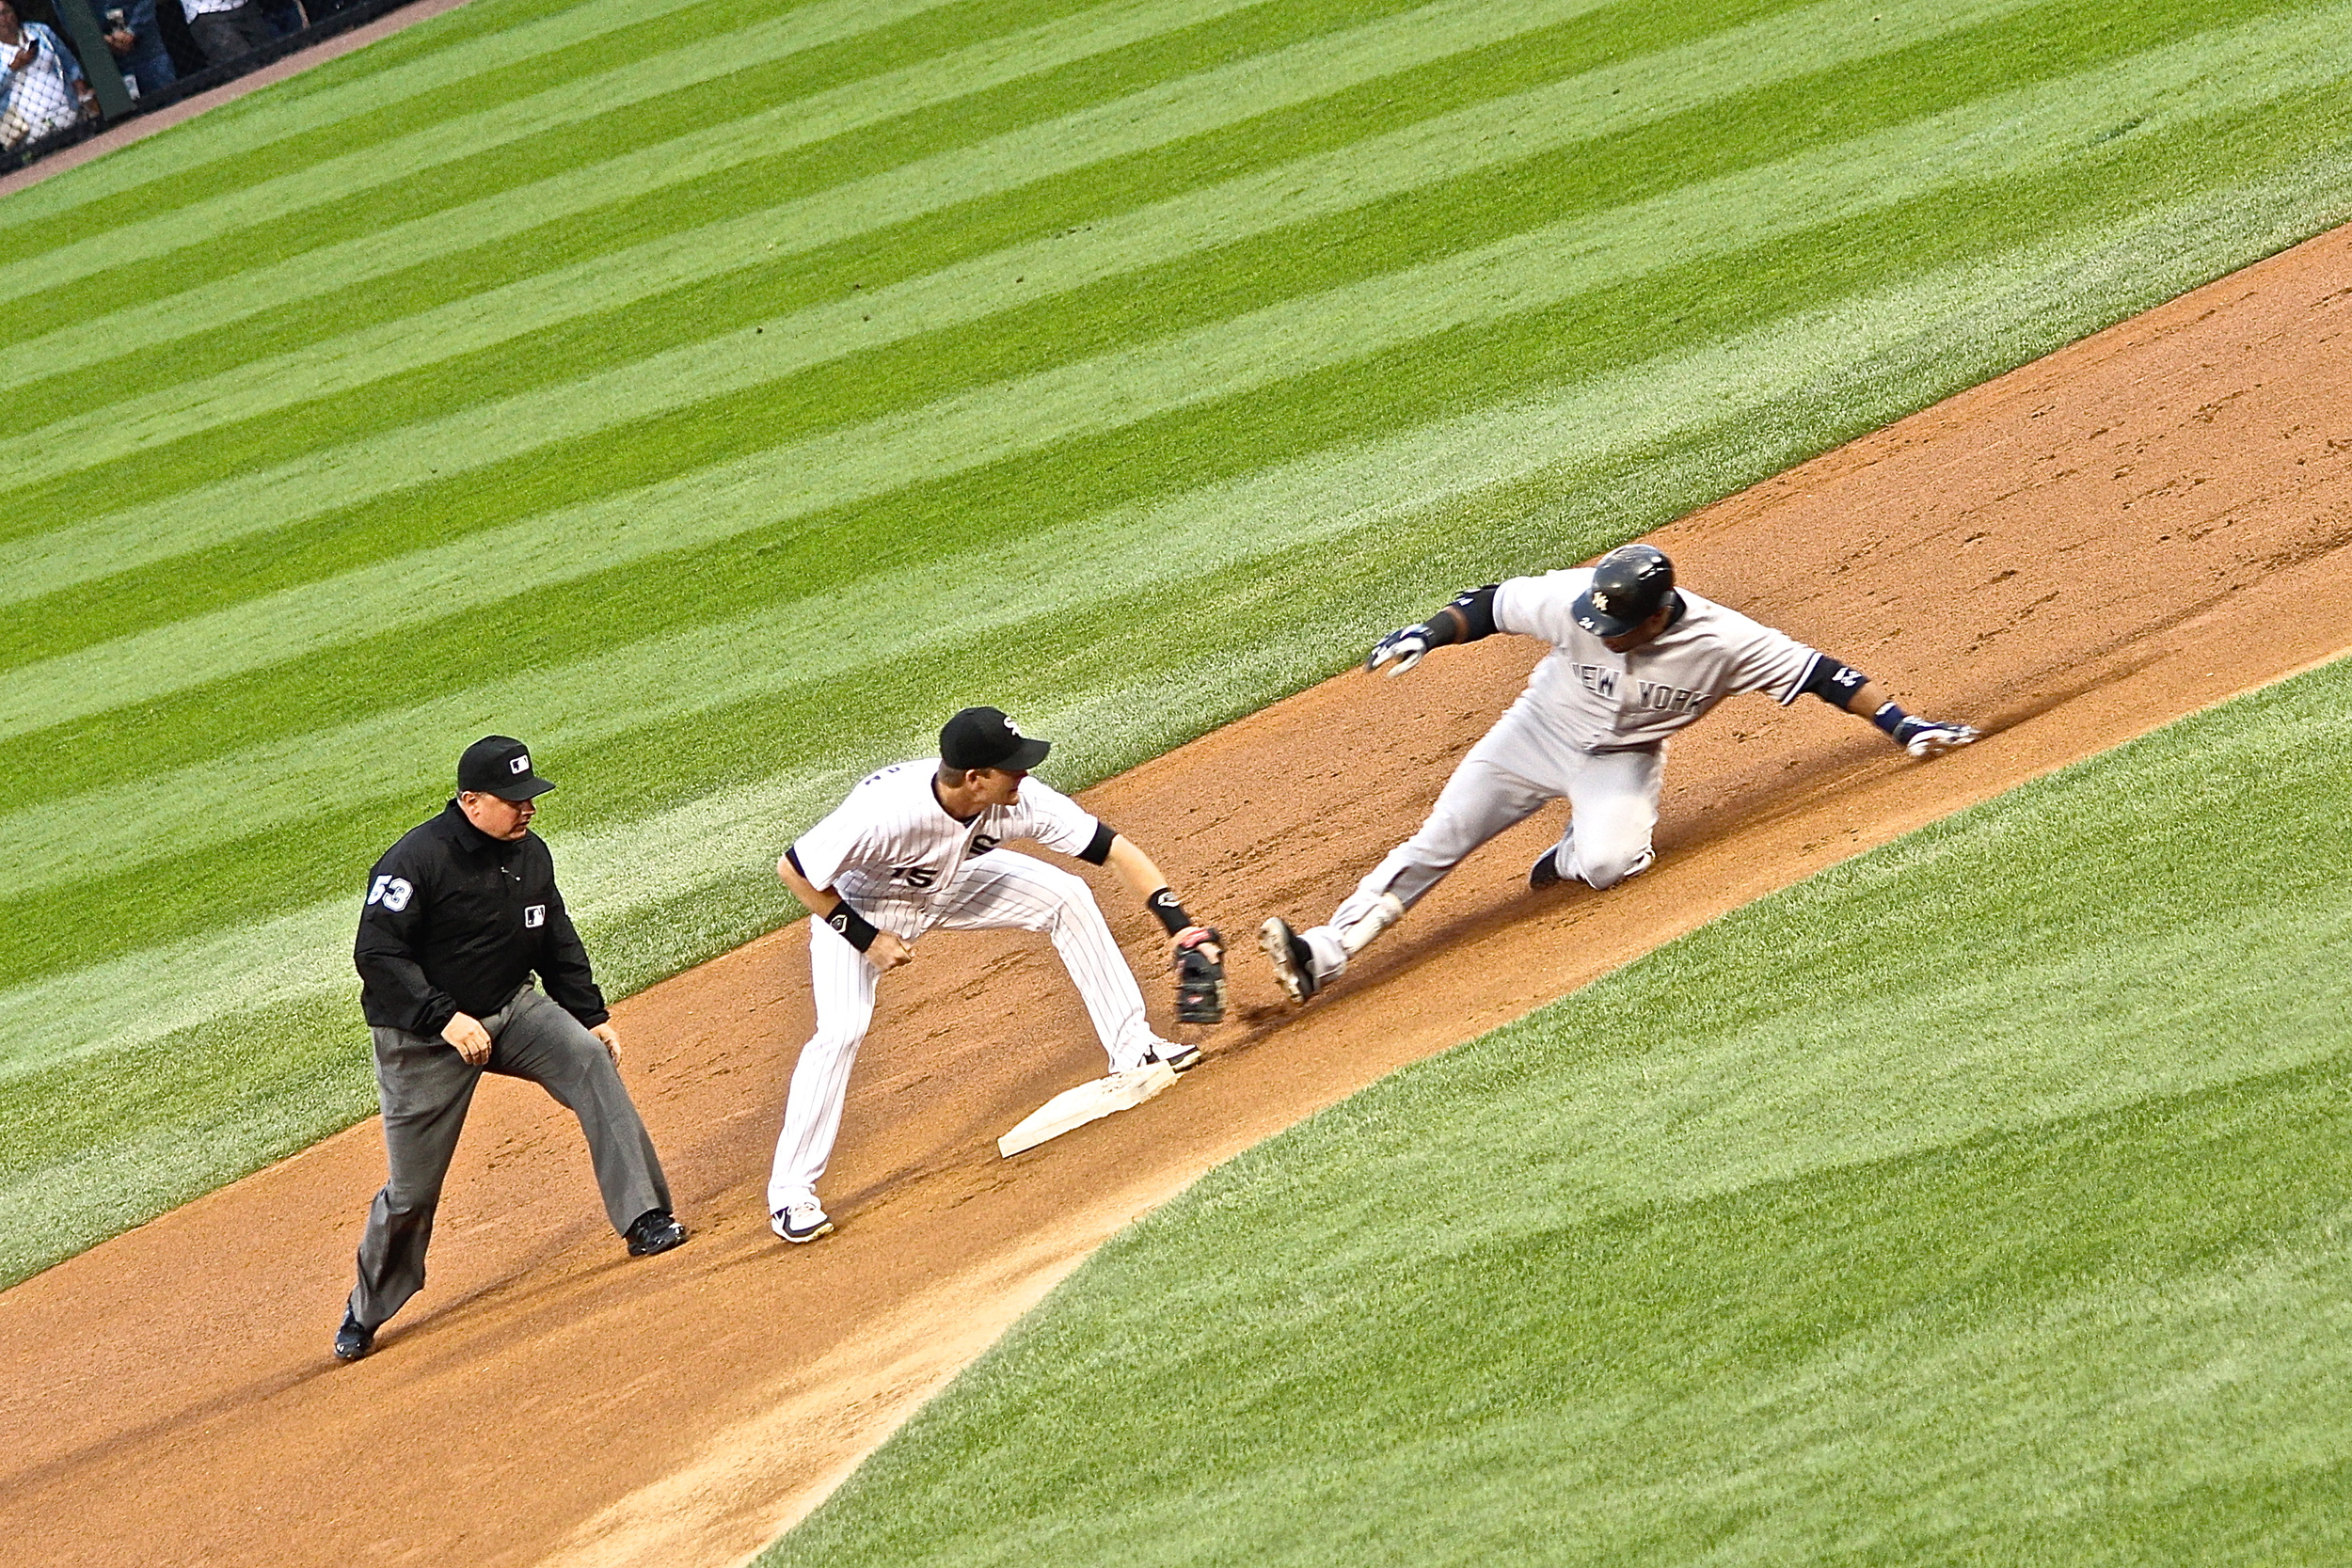 Robinson Cano out at second